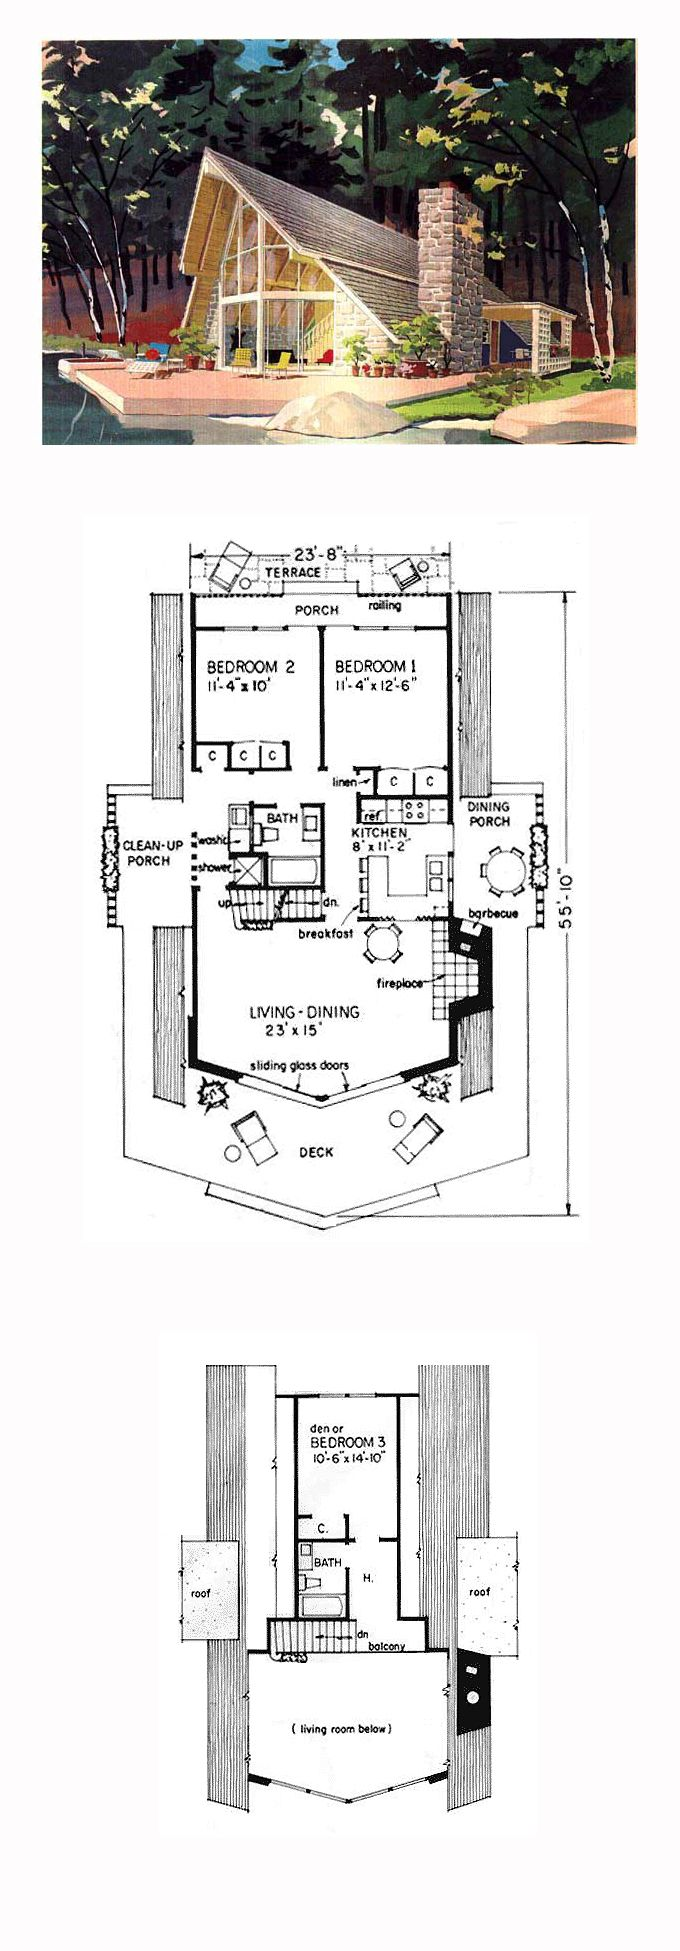 17 best images about best selling house plans on pinterest for Best selling floor plans